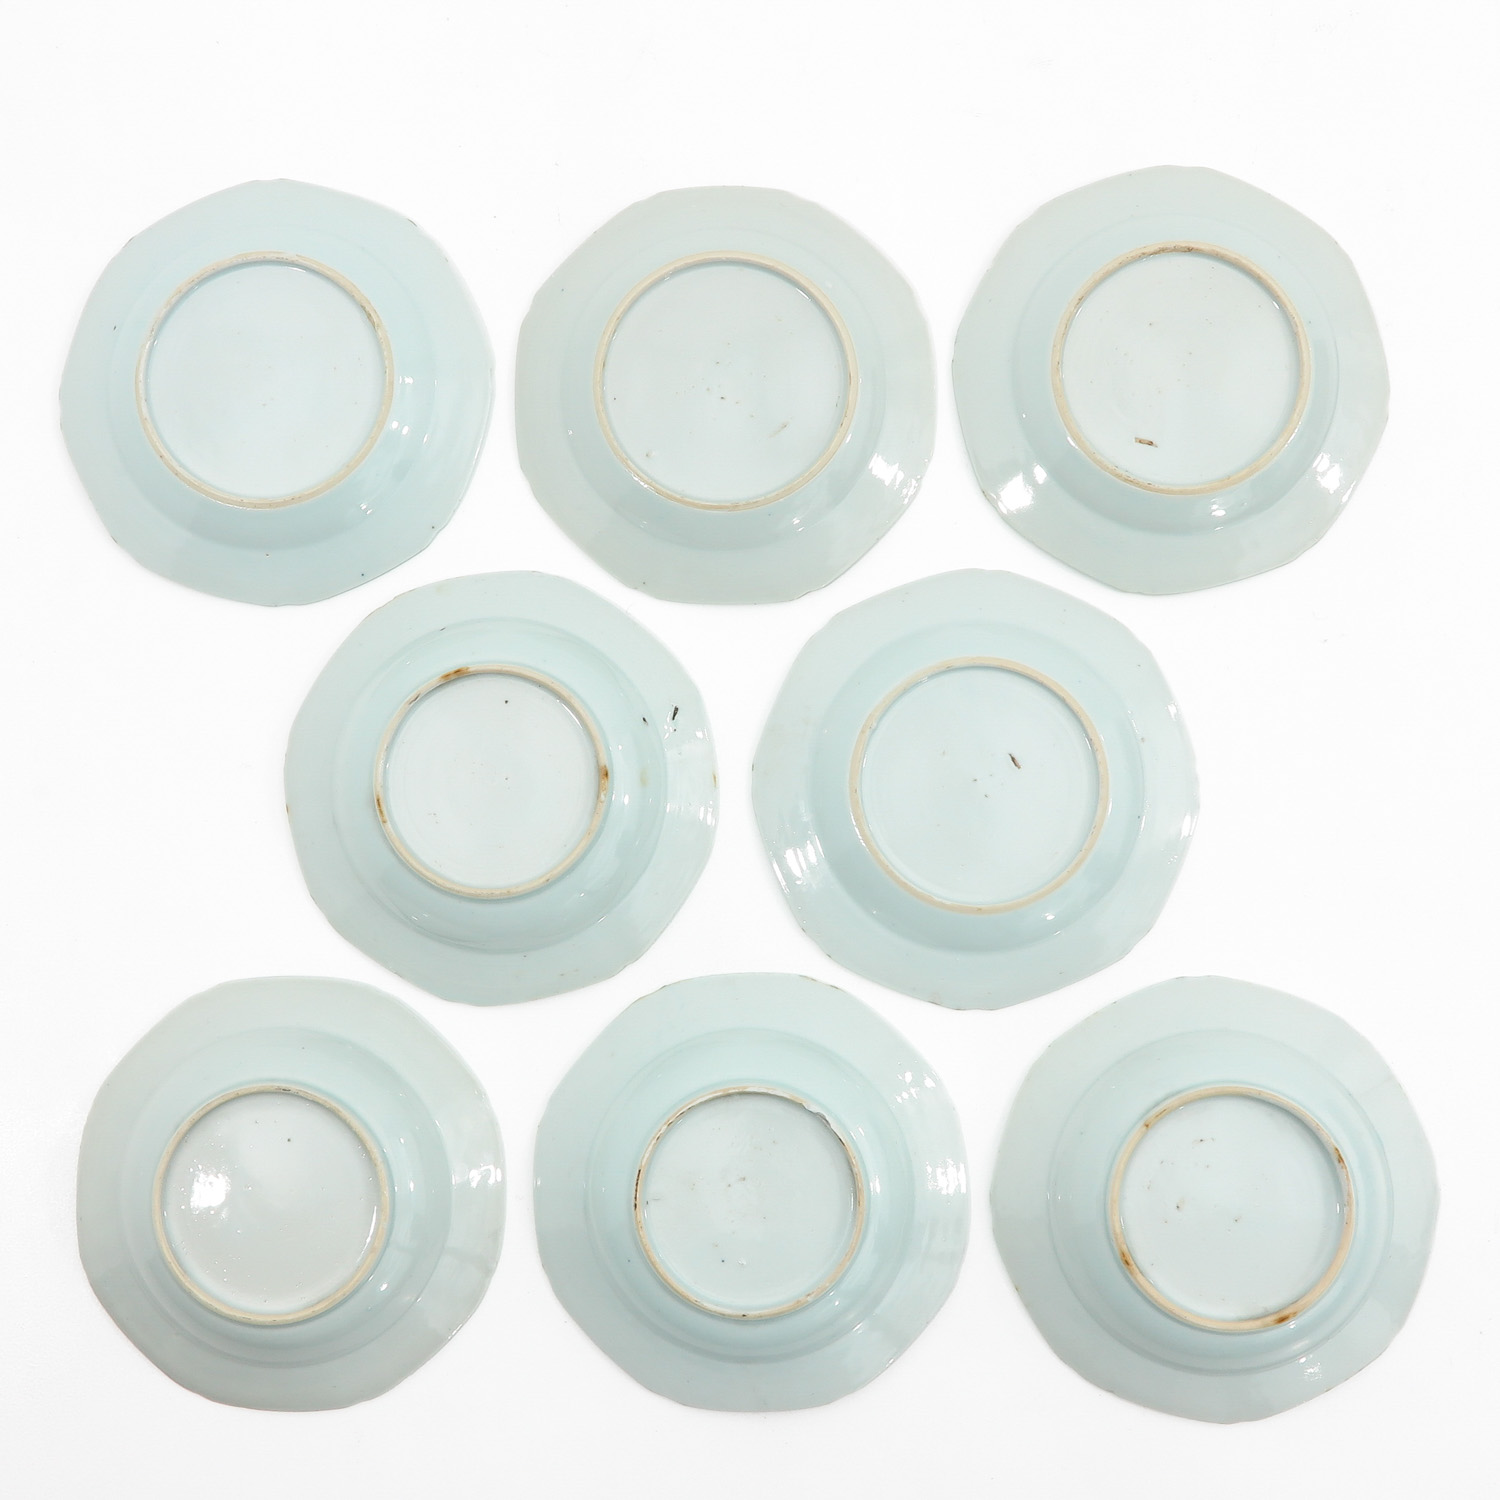 A Series of 8 Blue and White Plates - Image 2 of 9